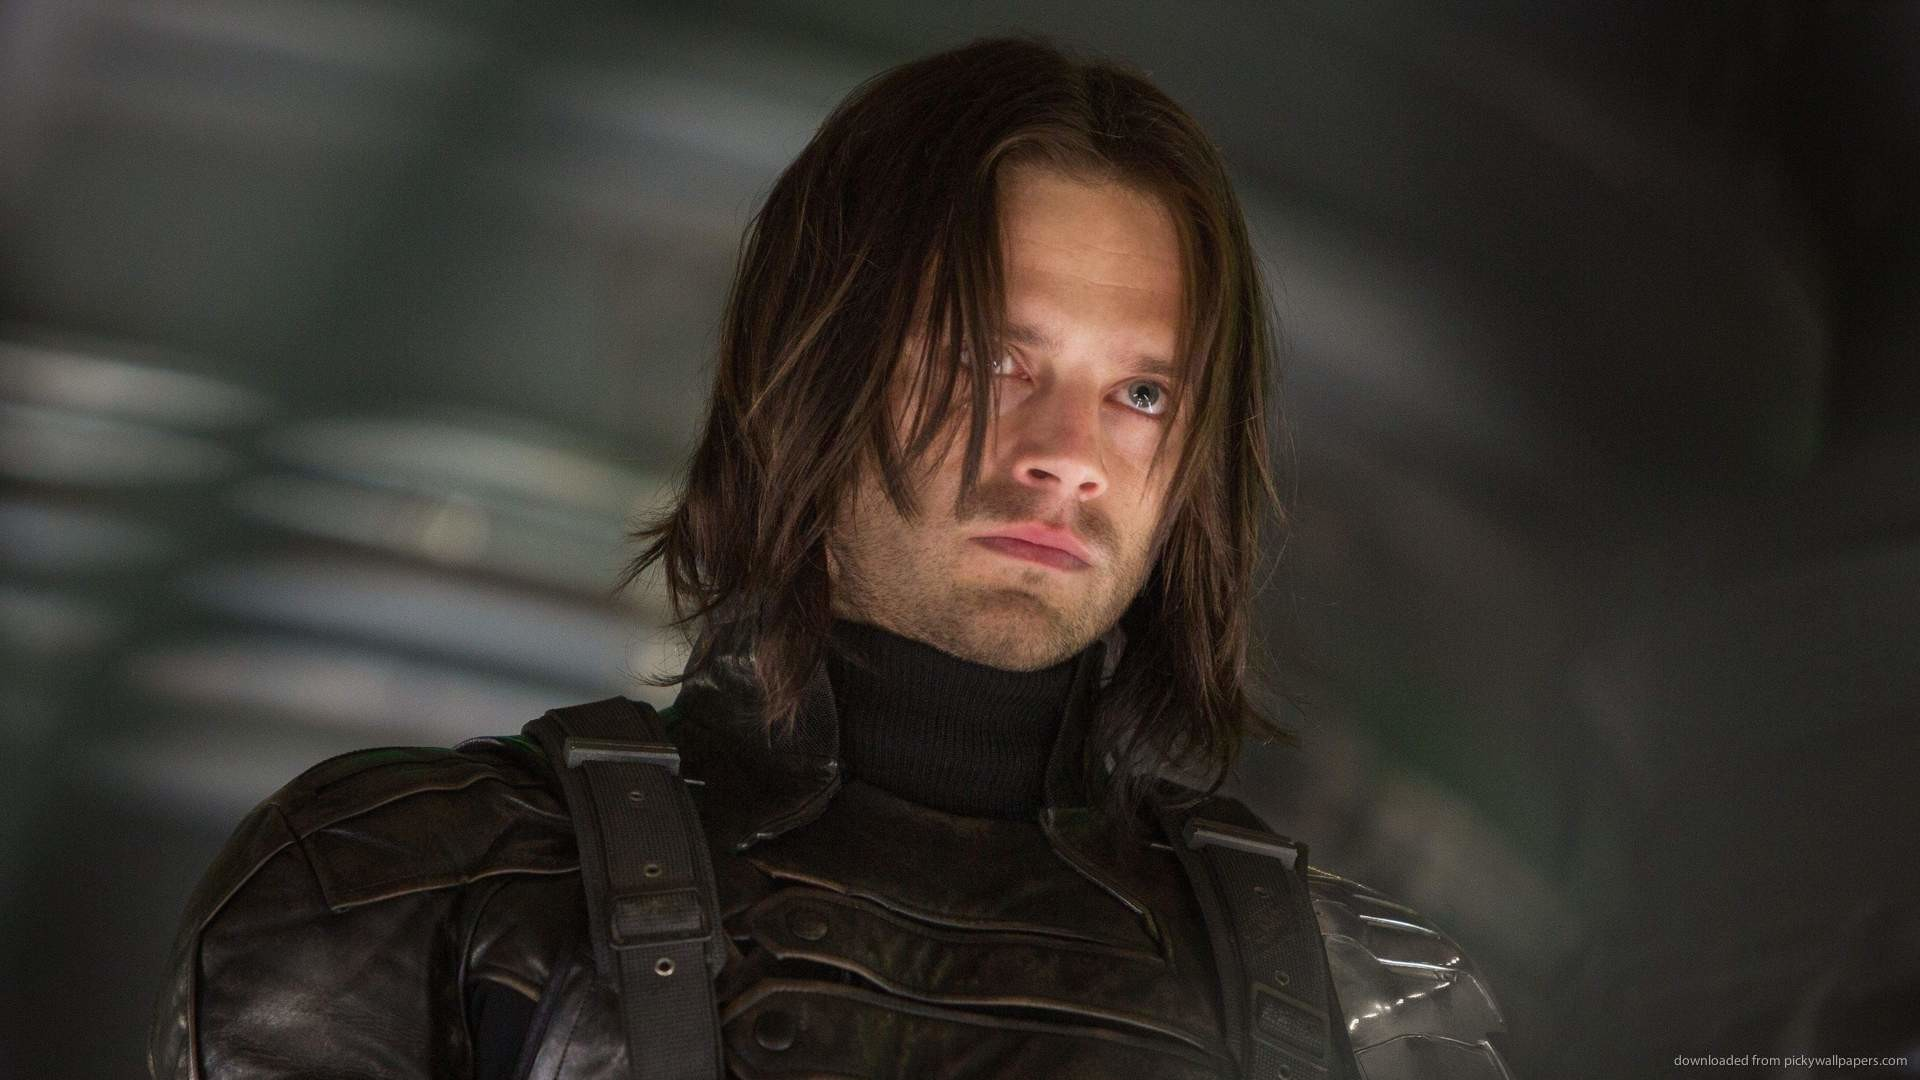 1920x1080 Captain America The Winter Soldier HD desktop wallpaper 500×500 .